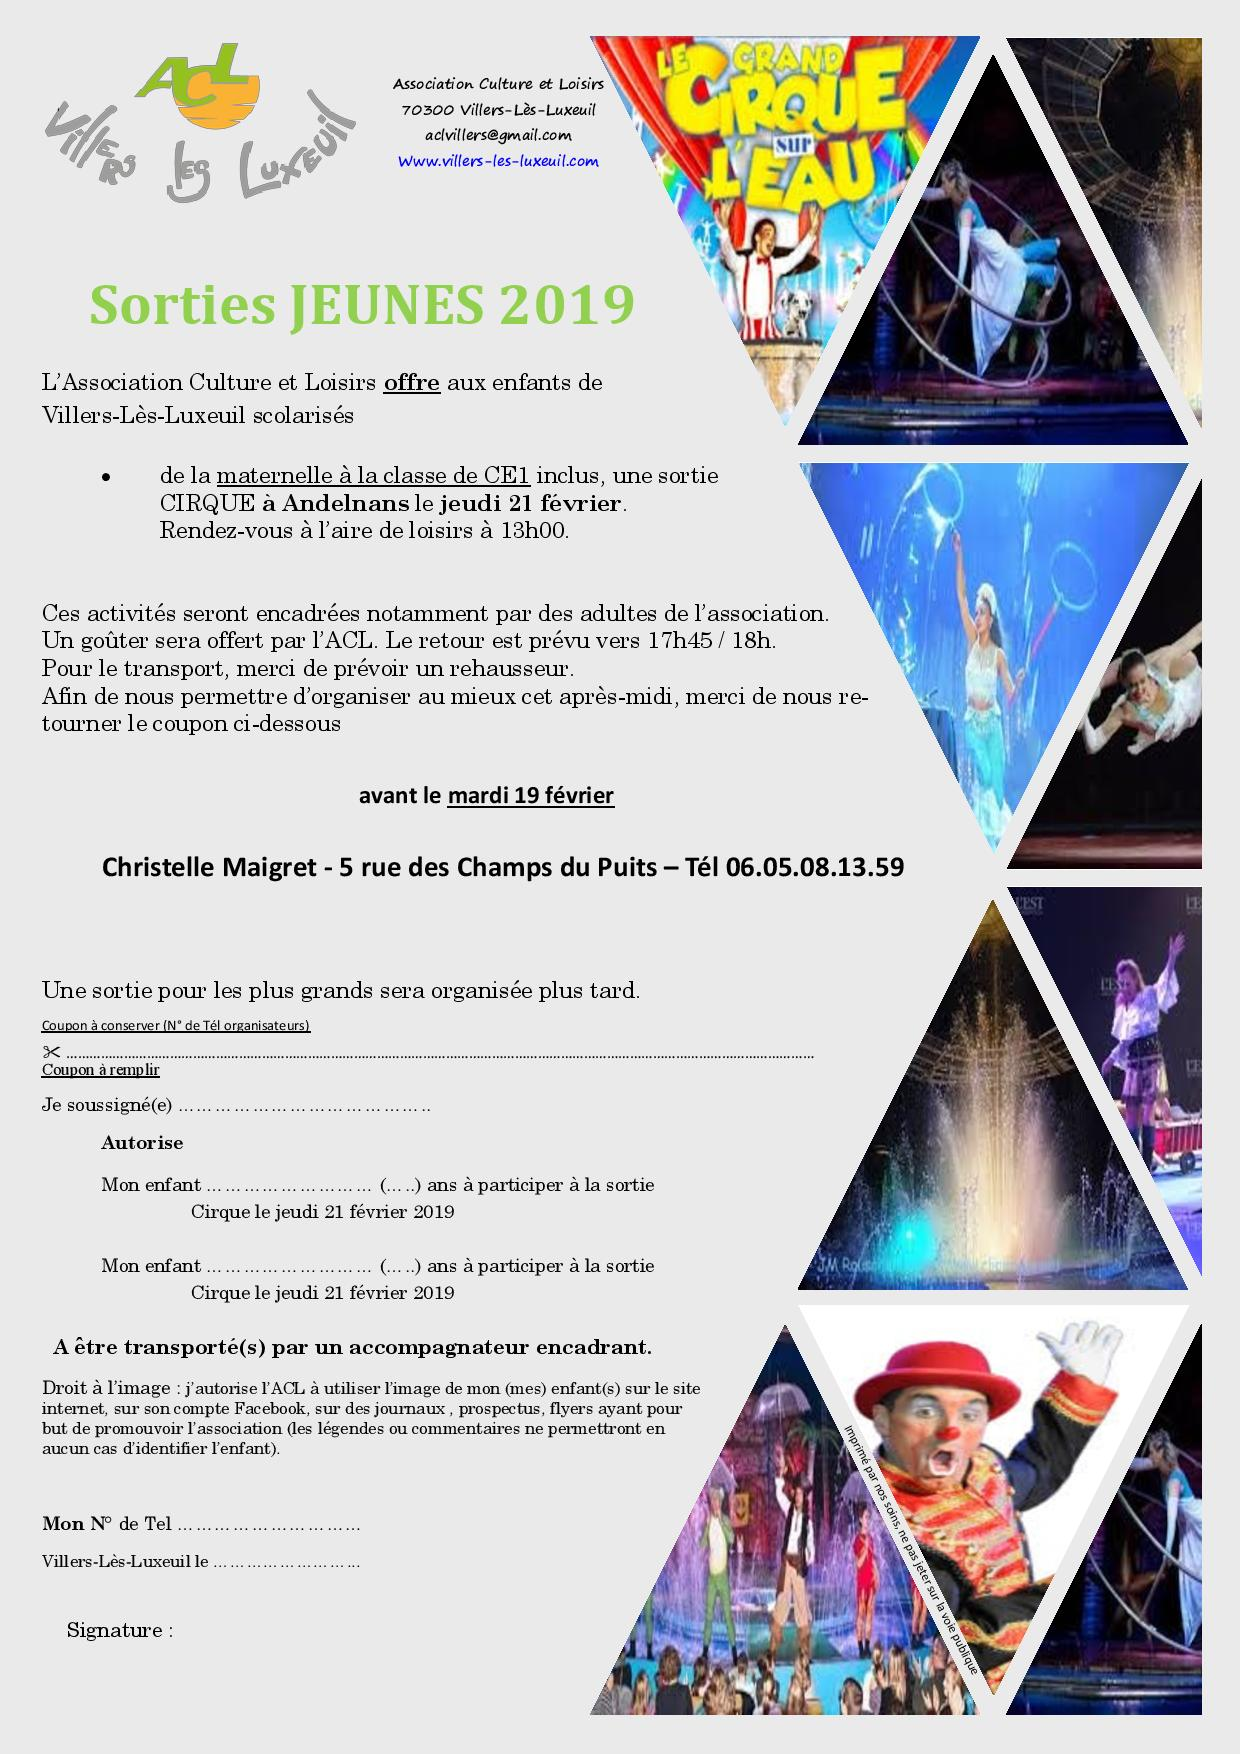 https://www.villers-les-luxeuil.com/projets/villers/files/images/2019_Evenements/00_TRACTS/Tract_Sortie_cirque_2019_page_001.jpg